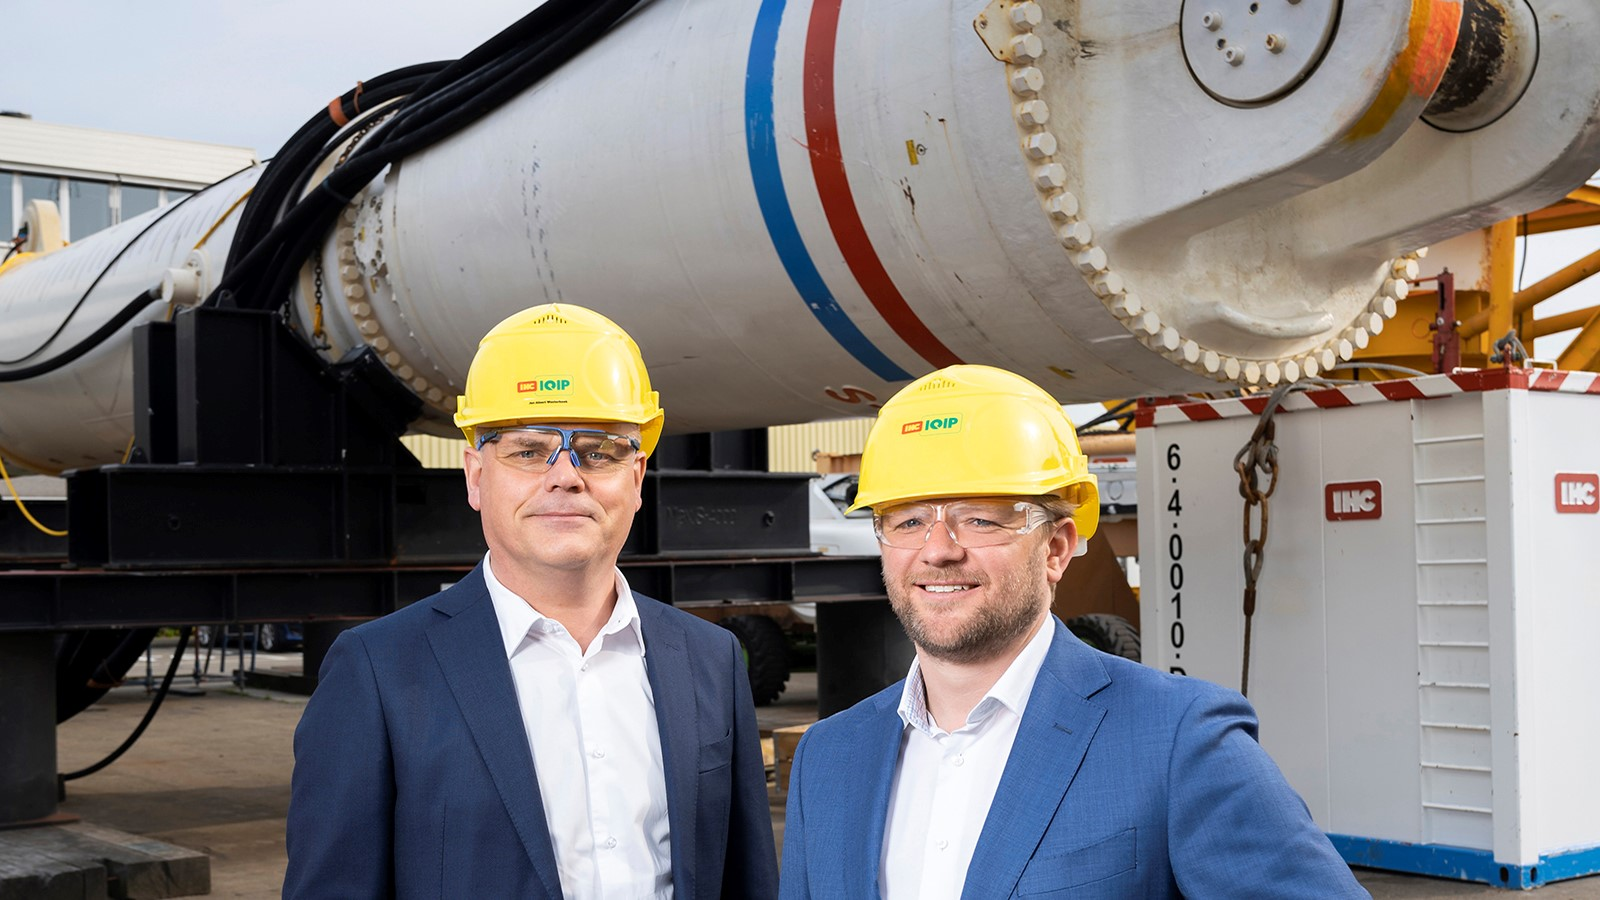 IHC IQIP investeert in ontwikkeling BLUE Piling Technology